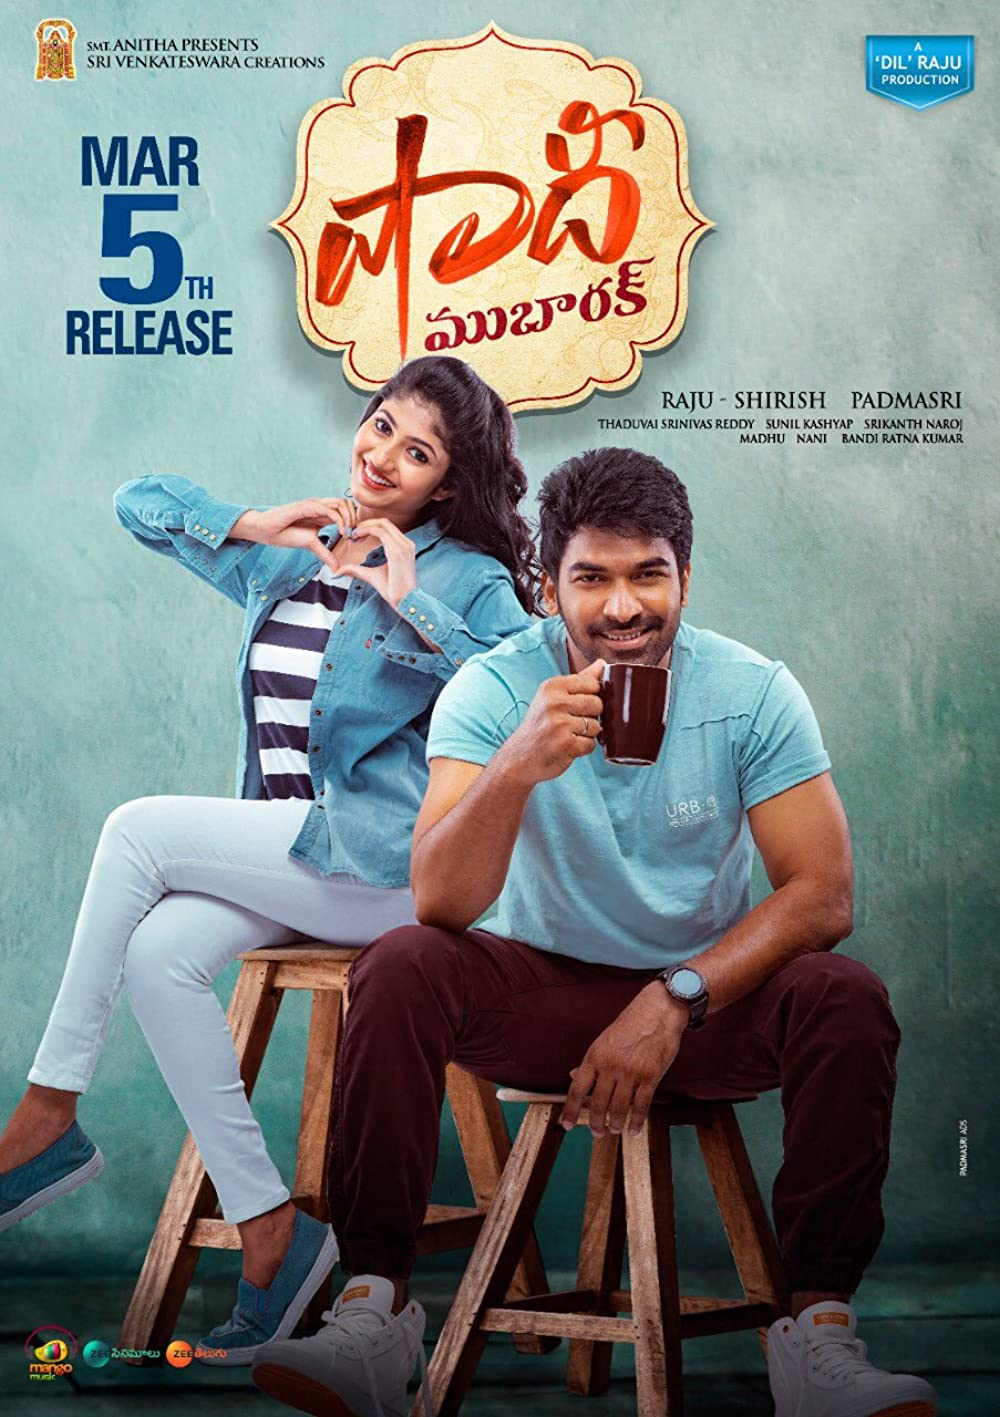 Shaadi Mubarak 2021 Telugu Movie 480p HDRip ESub 350MB x264 AAC